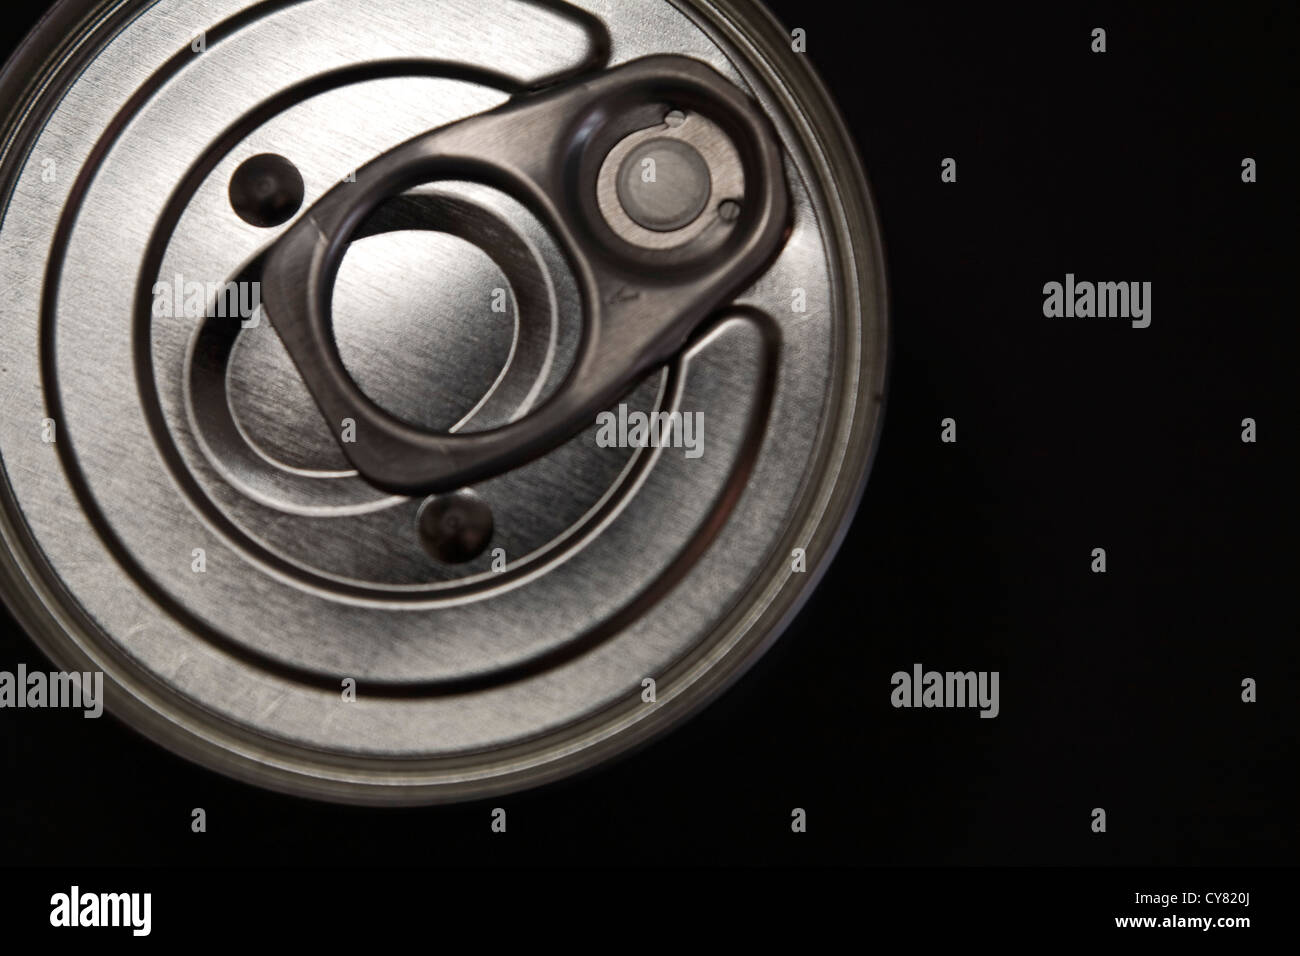 Can With Pull-Tab, High Angle View - Stock Image